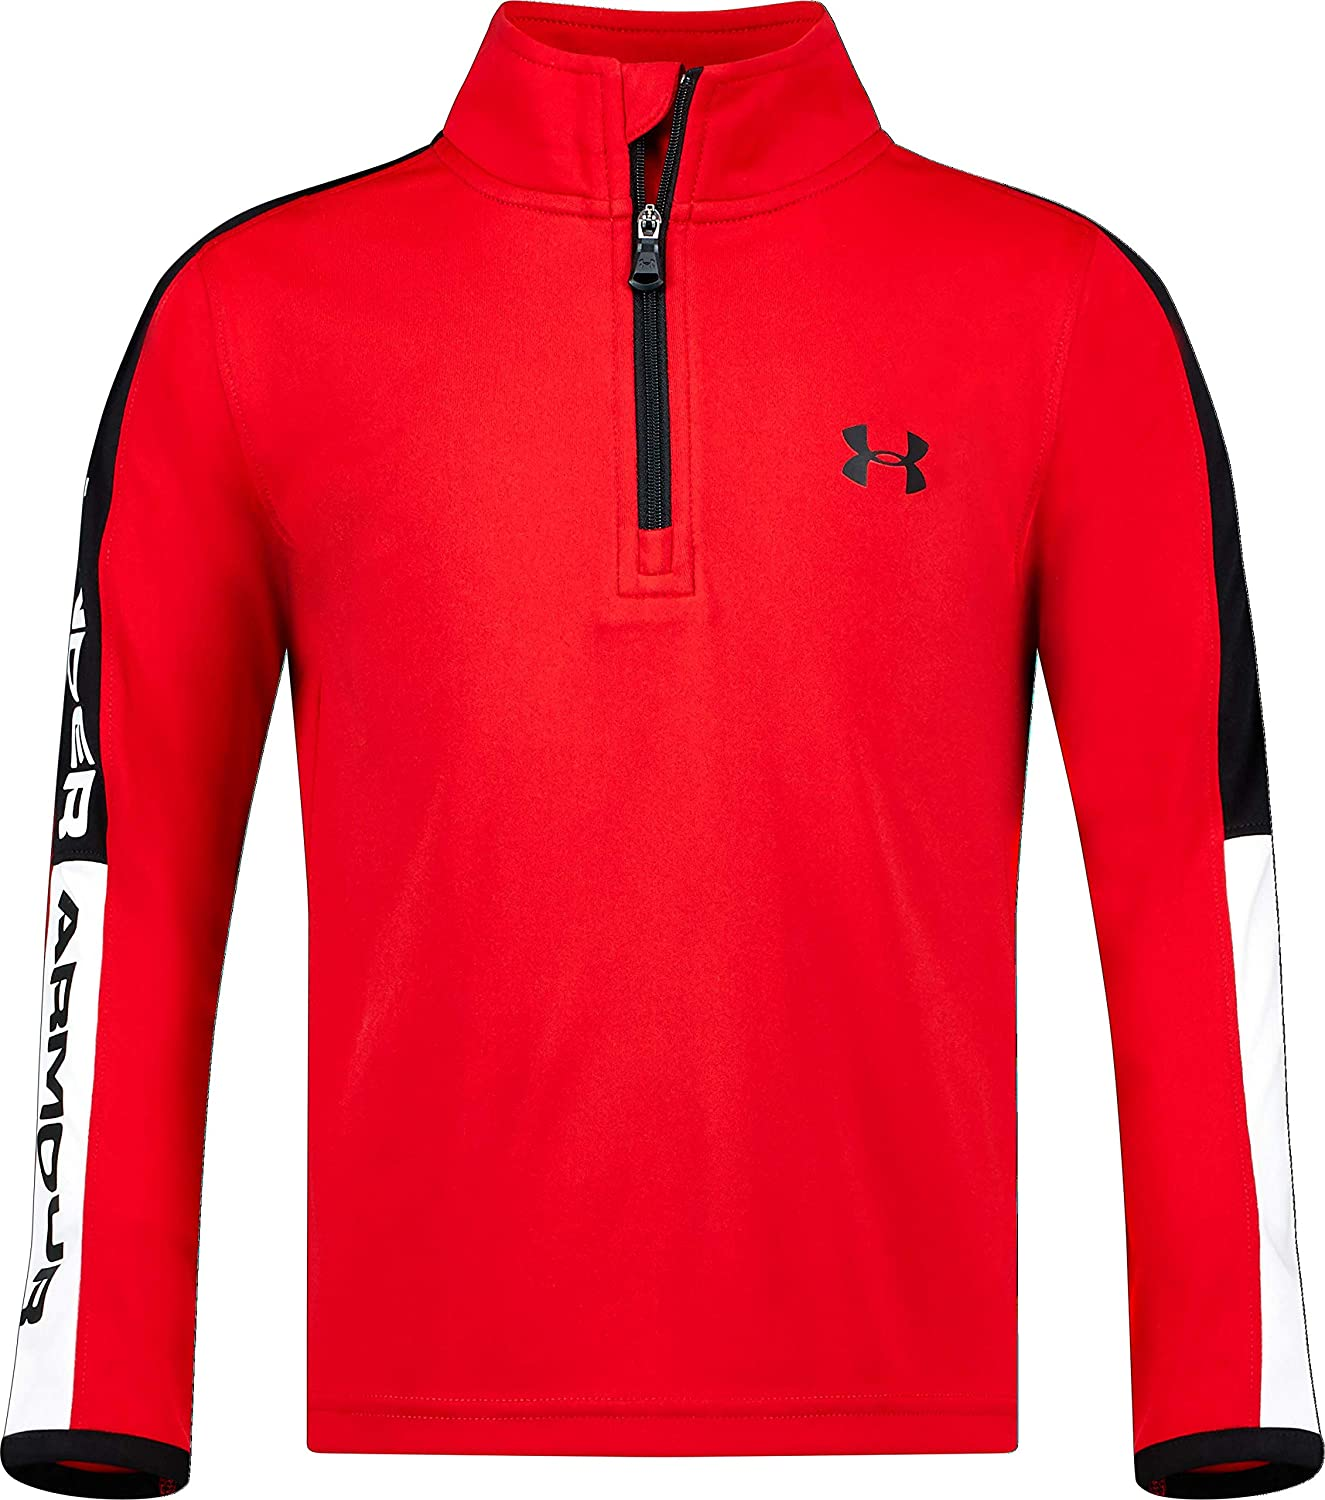 Under Armour Boys' 1 4 Long Zip Sleeve Financial sales sale Max 61% OFF Top